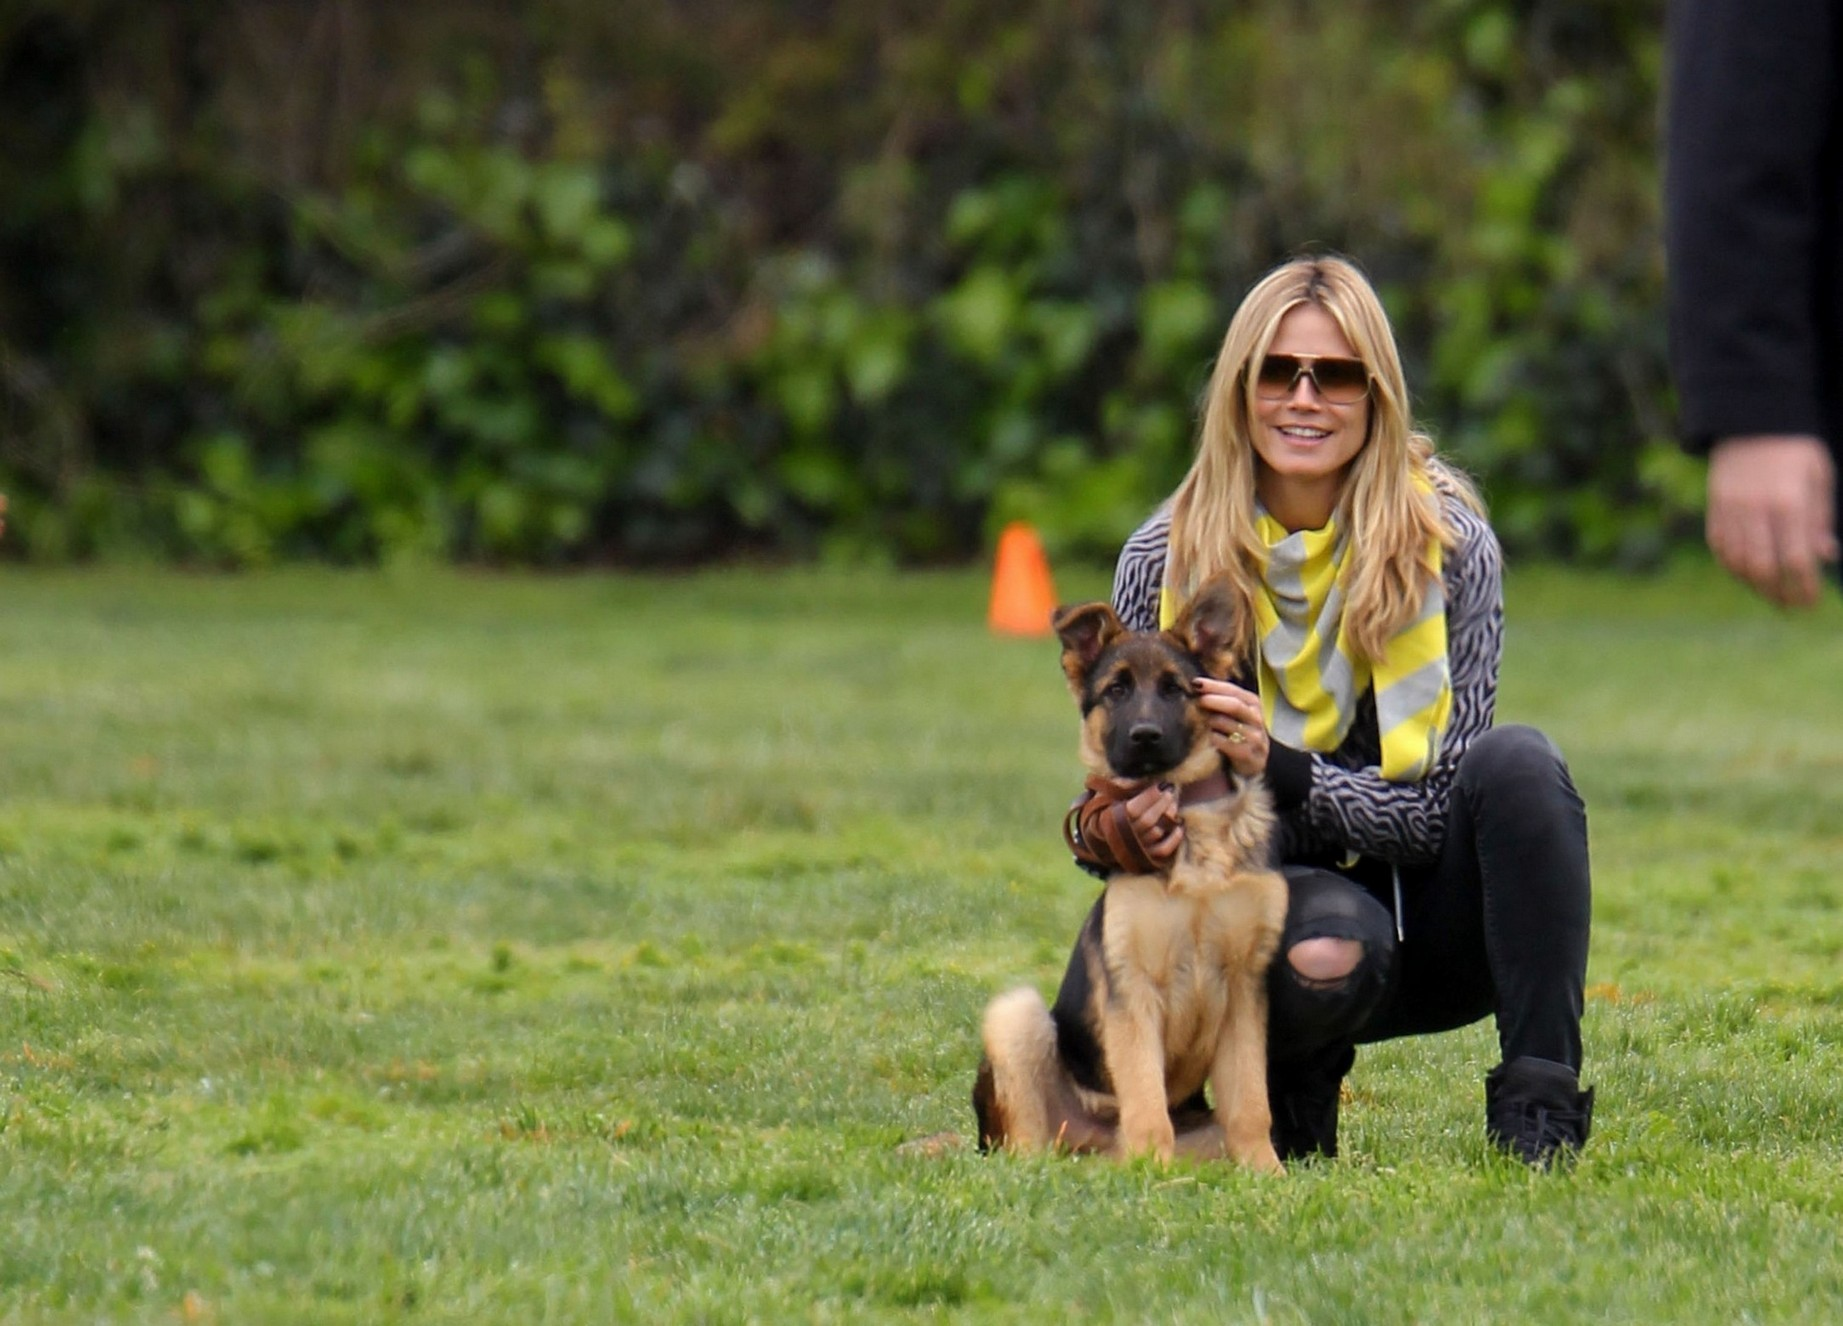 EXCLUSIVE: Heidi Klum & Family Playing In The Park